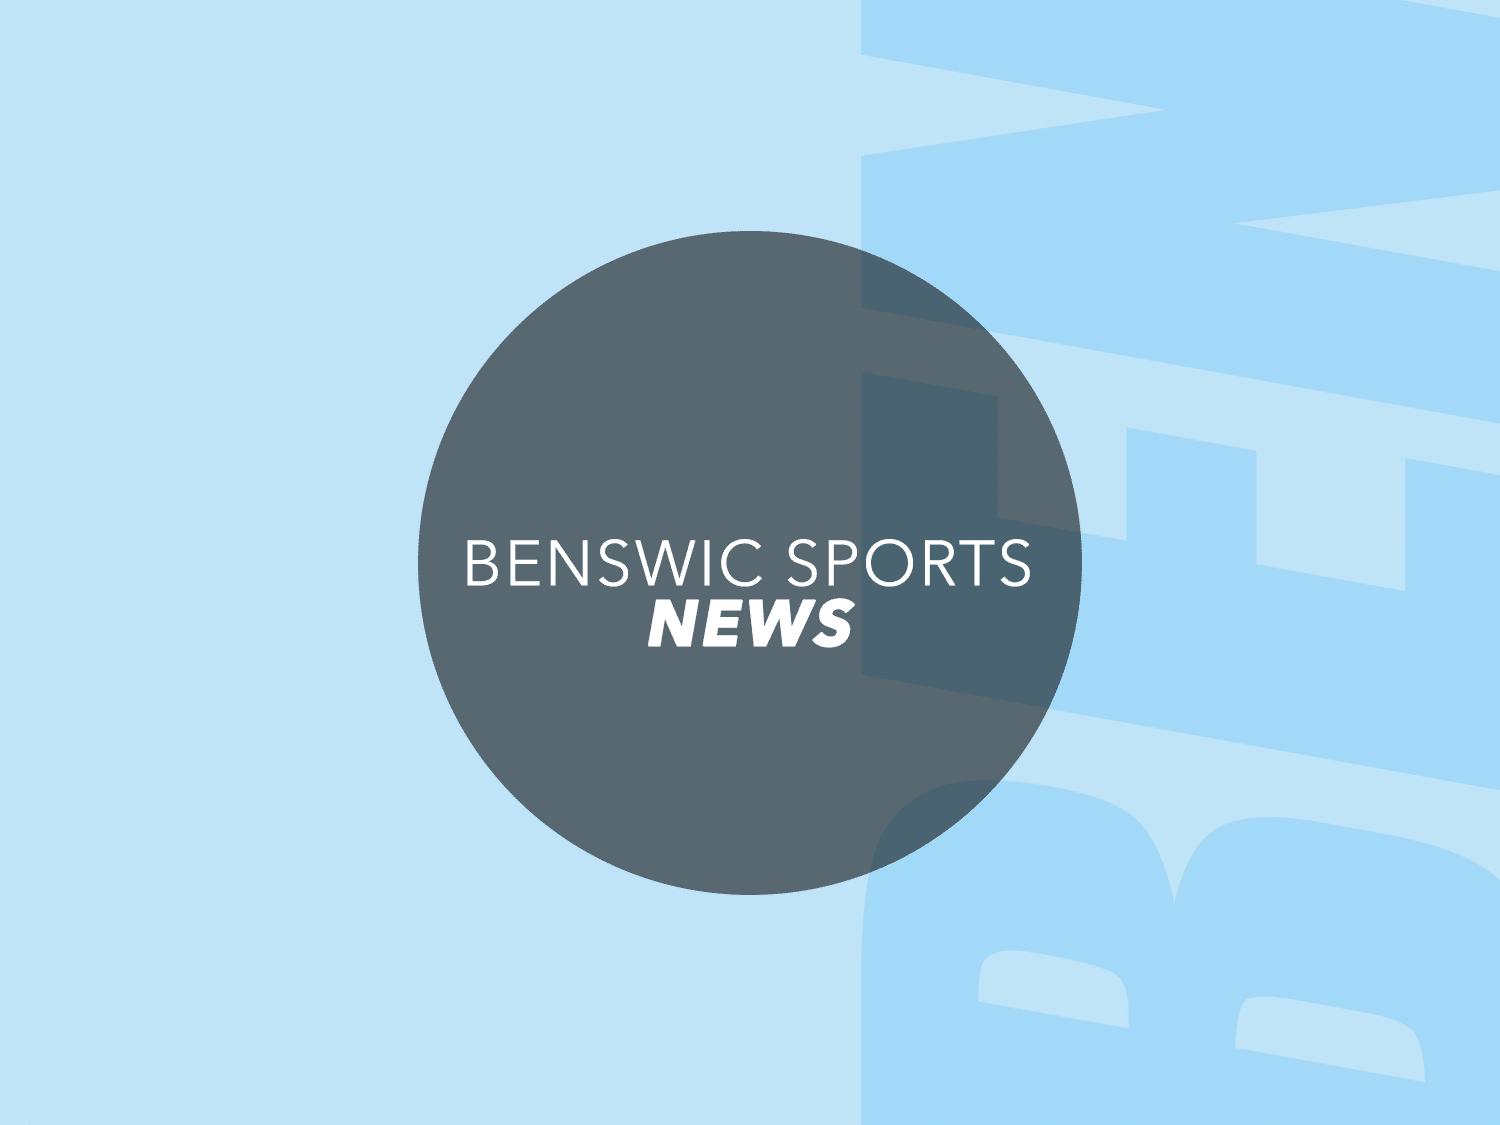 Benswic Sports News